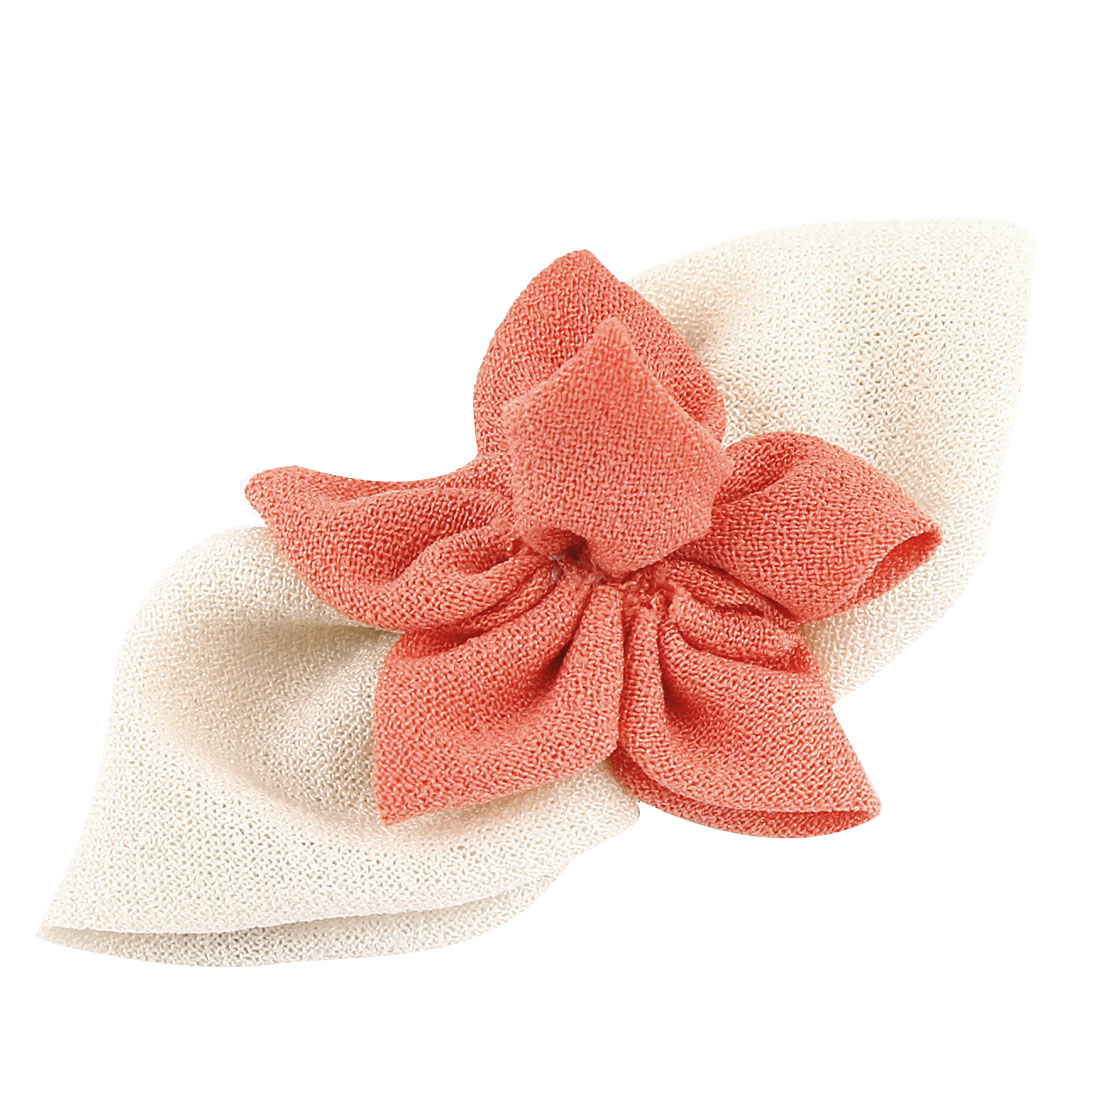 Watermelon Red Organza Flower Design Beige Bowknot Detail Silver Tone Metal Single Prong Alligator Clip Hairclip for Lady